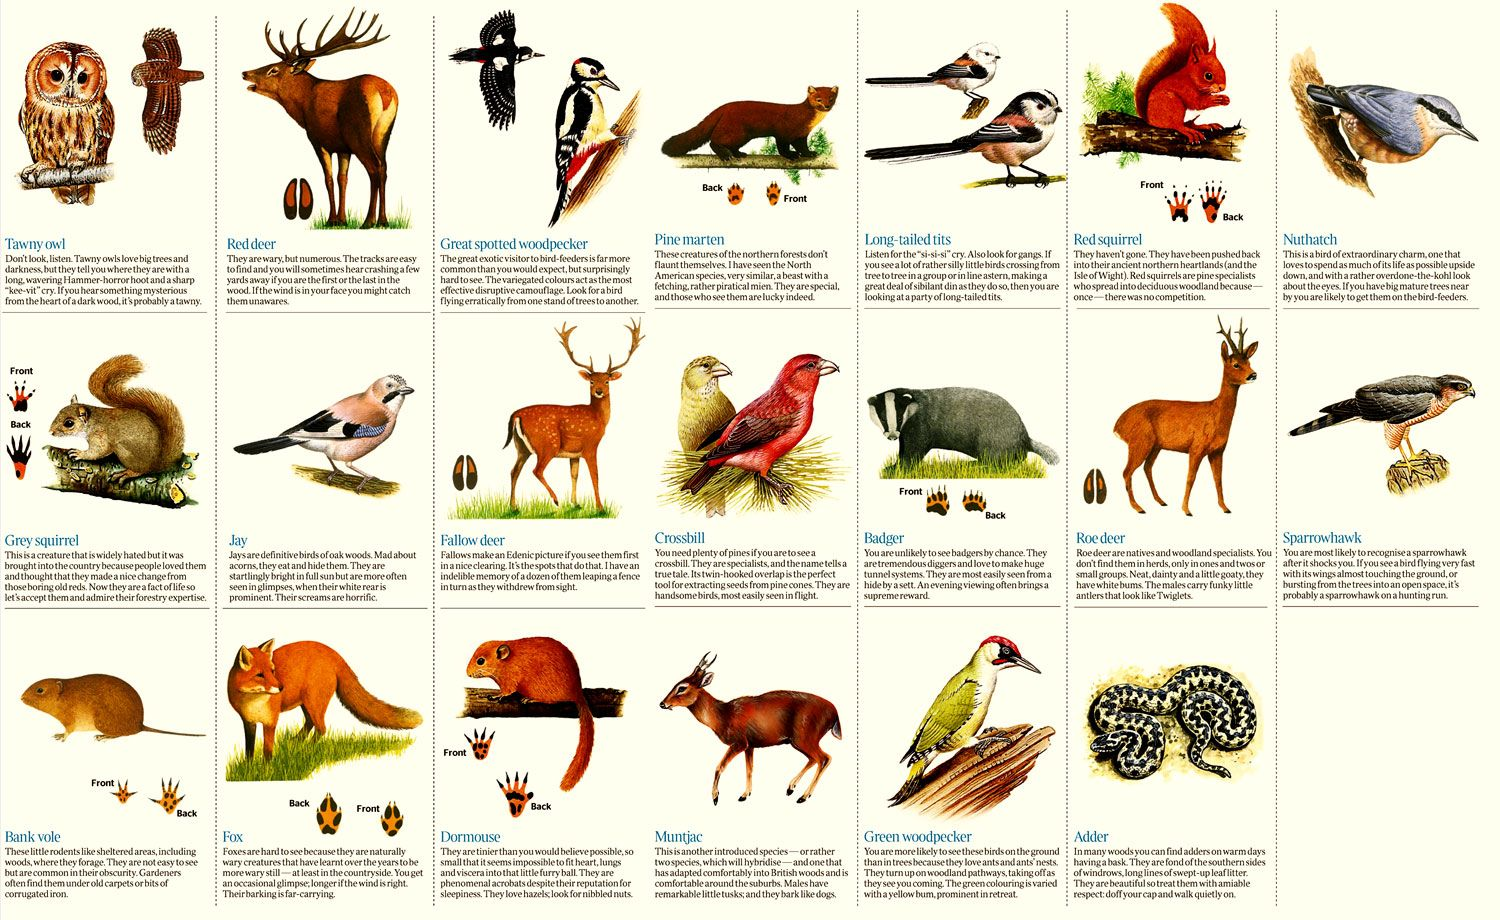 Woodland wildlife How to see the creatures through the